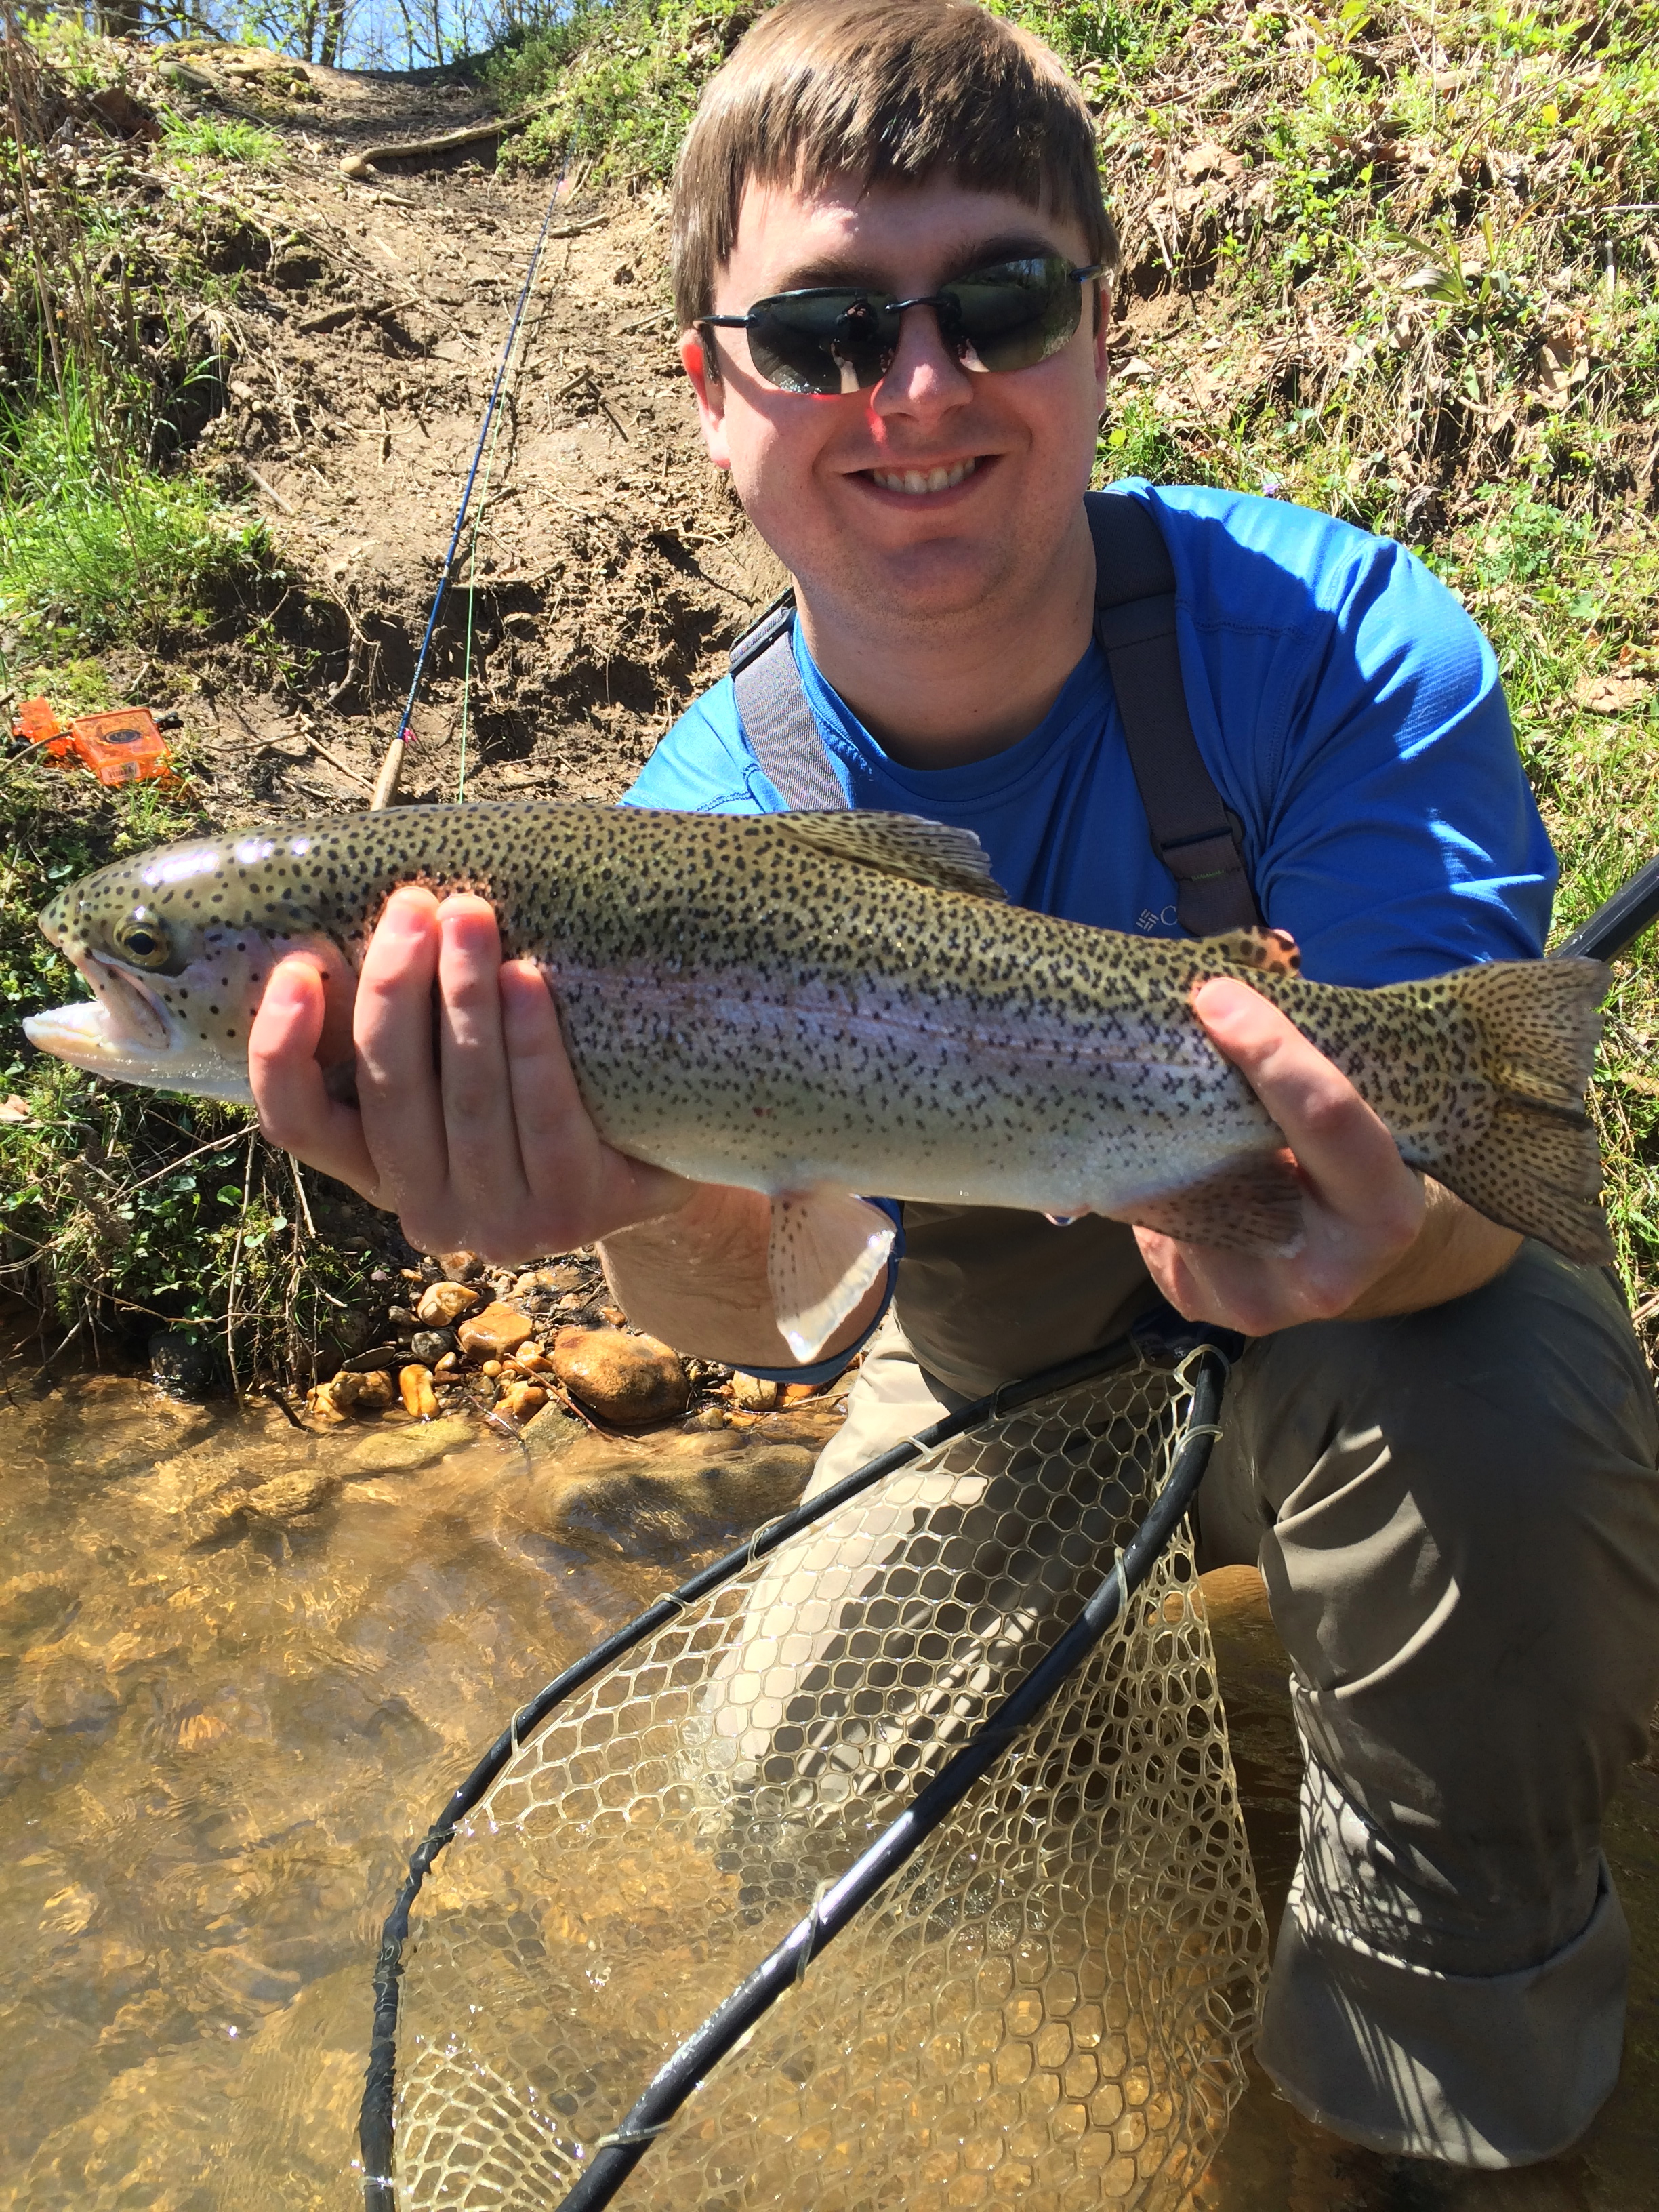 Georgia trophy trout fly fishing guide trips deep south for Trout fishing in ga